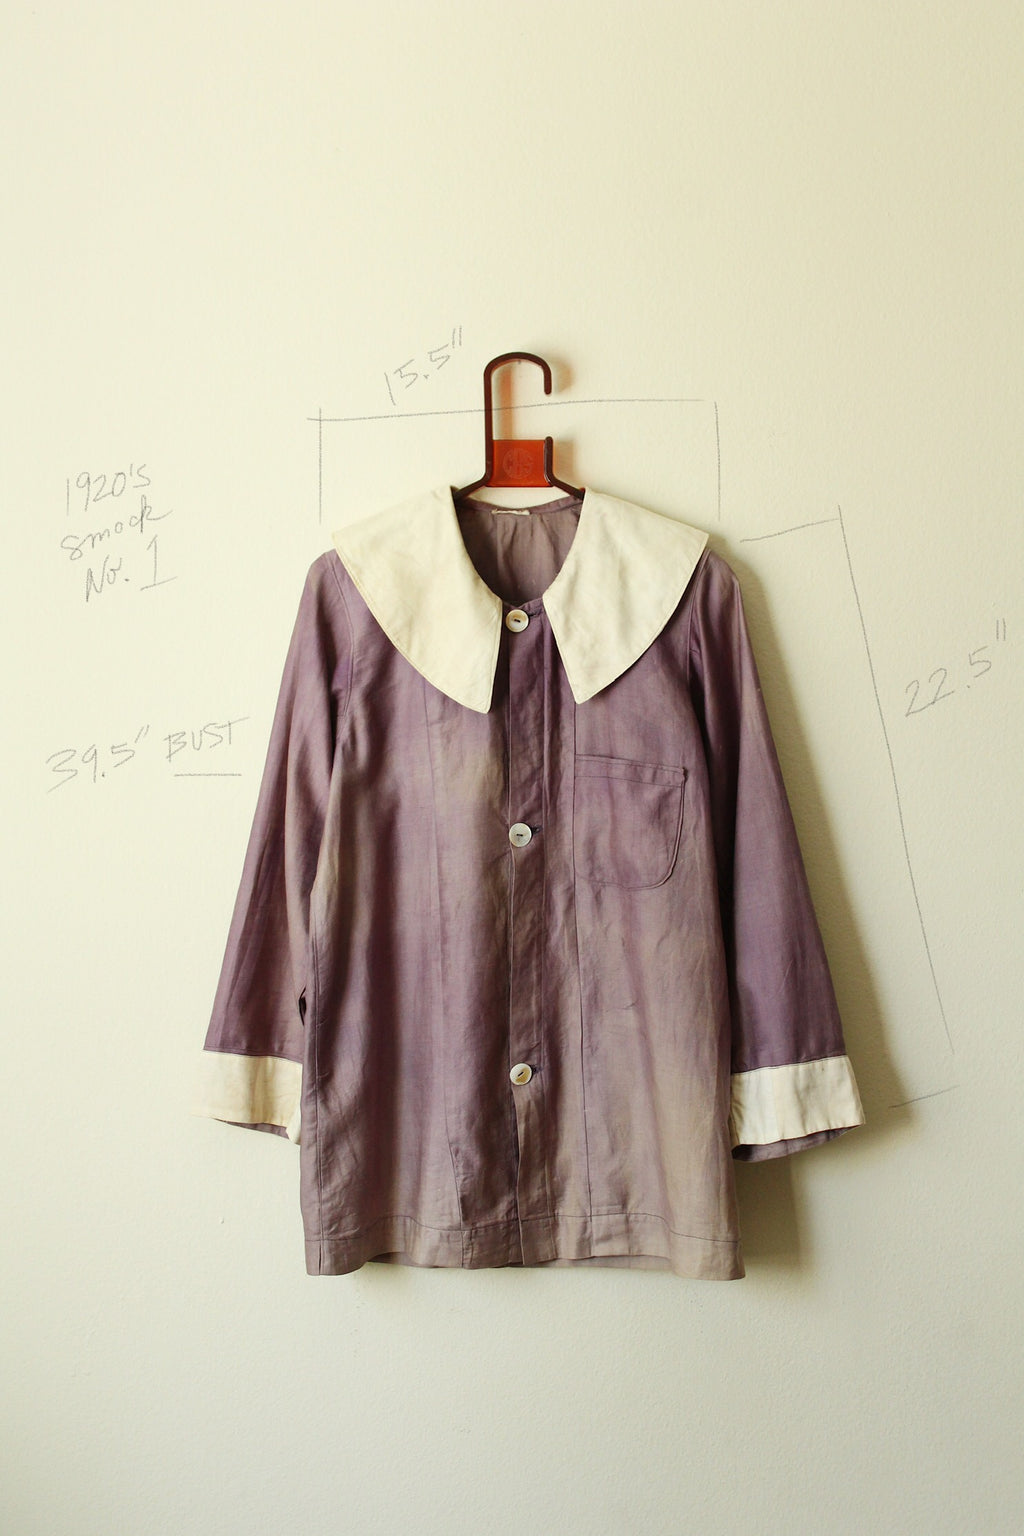 1920's Cotton Smock